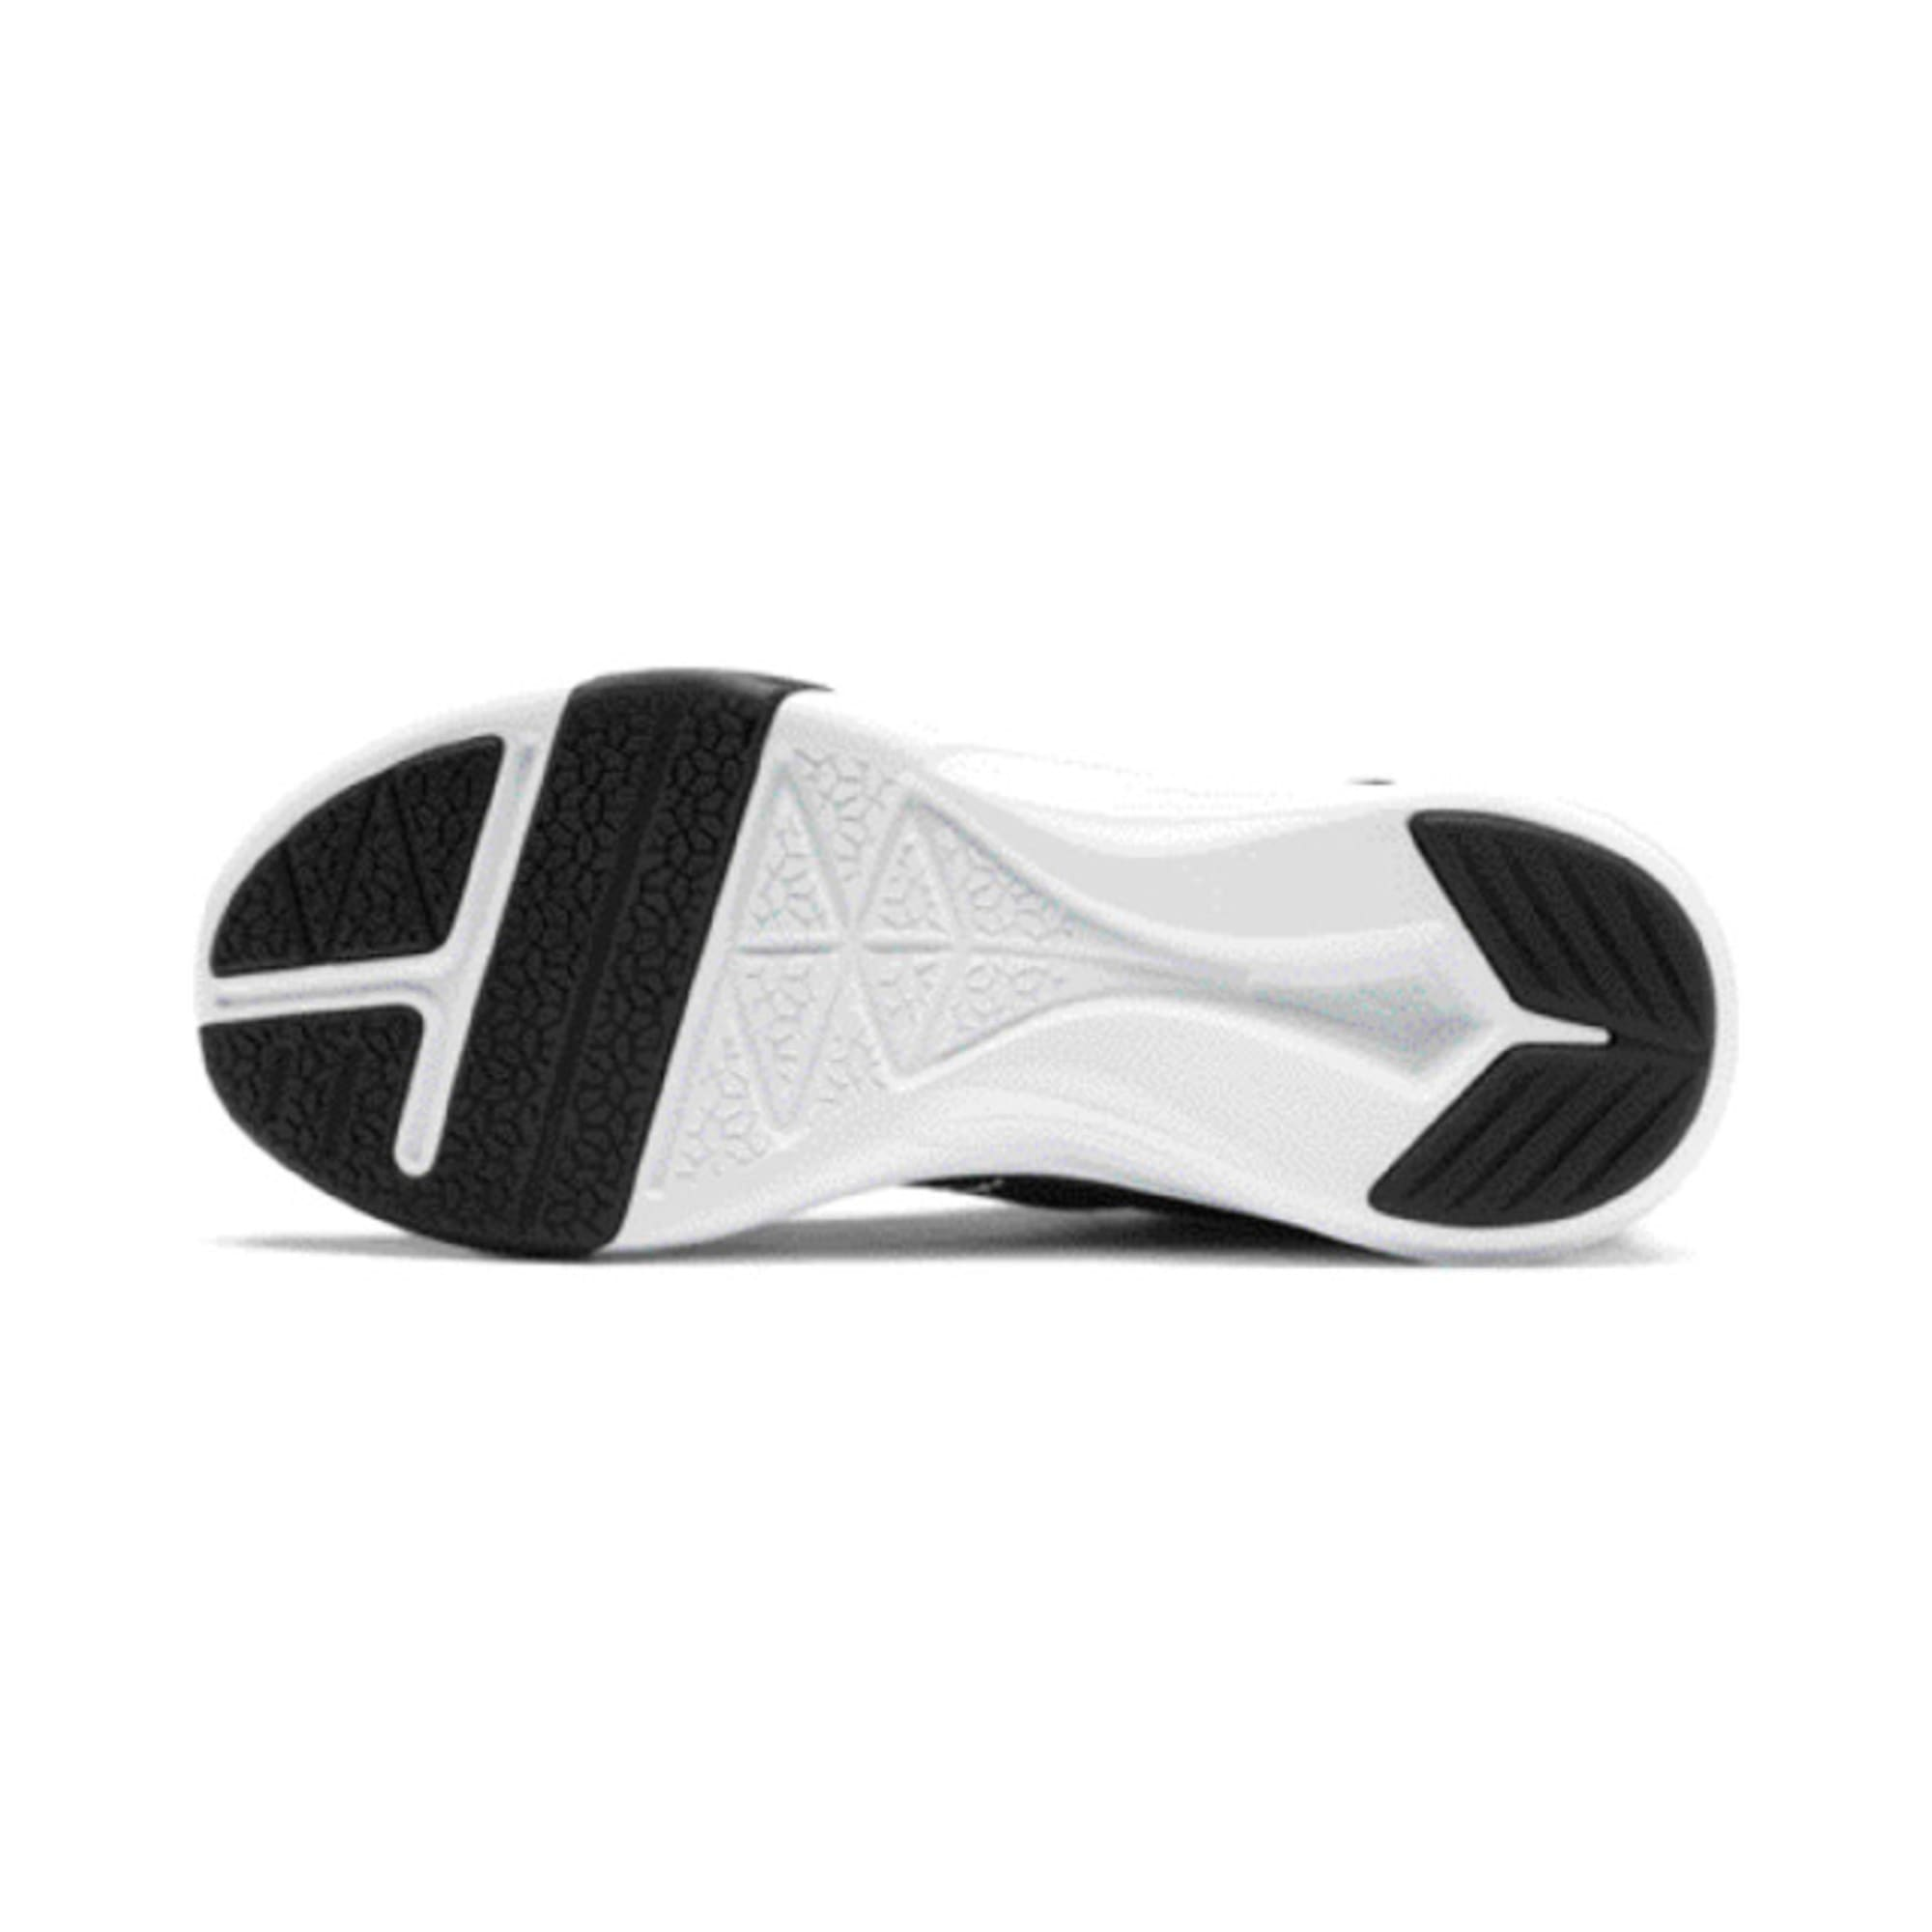 Thumbnail 7 of Aura XT Men's Trainers, Puma Black-Puma White, medium-IND